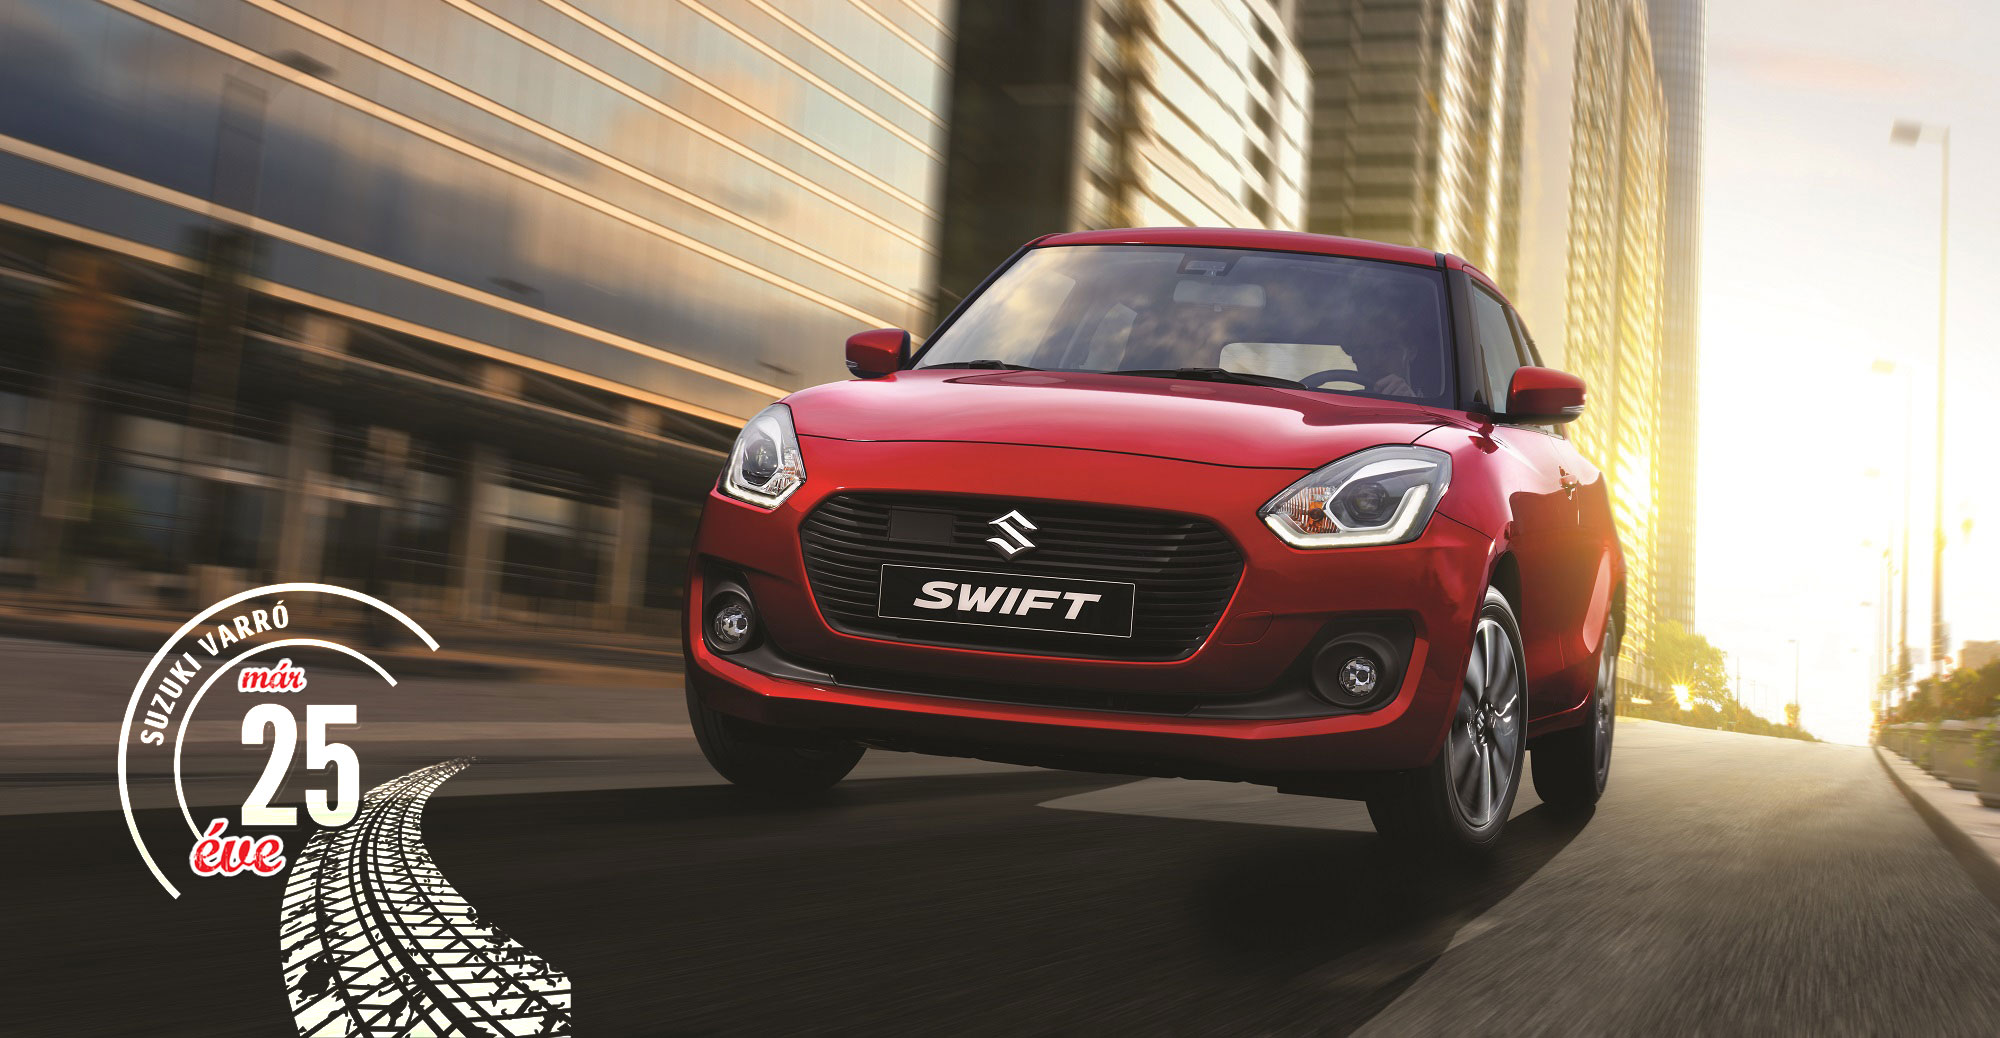 http://suzukivarro.hu/wp-content/uploads/2017/08/foto-8-suzuki-new-swift-cut5.jpg